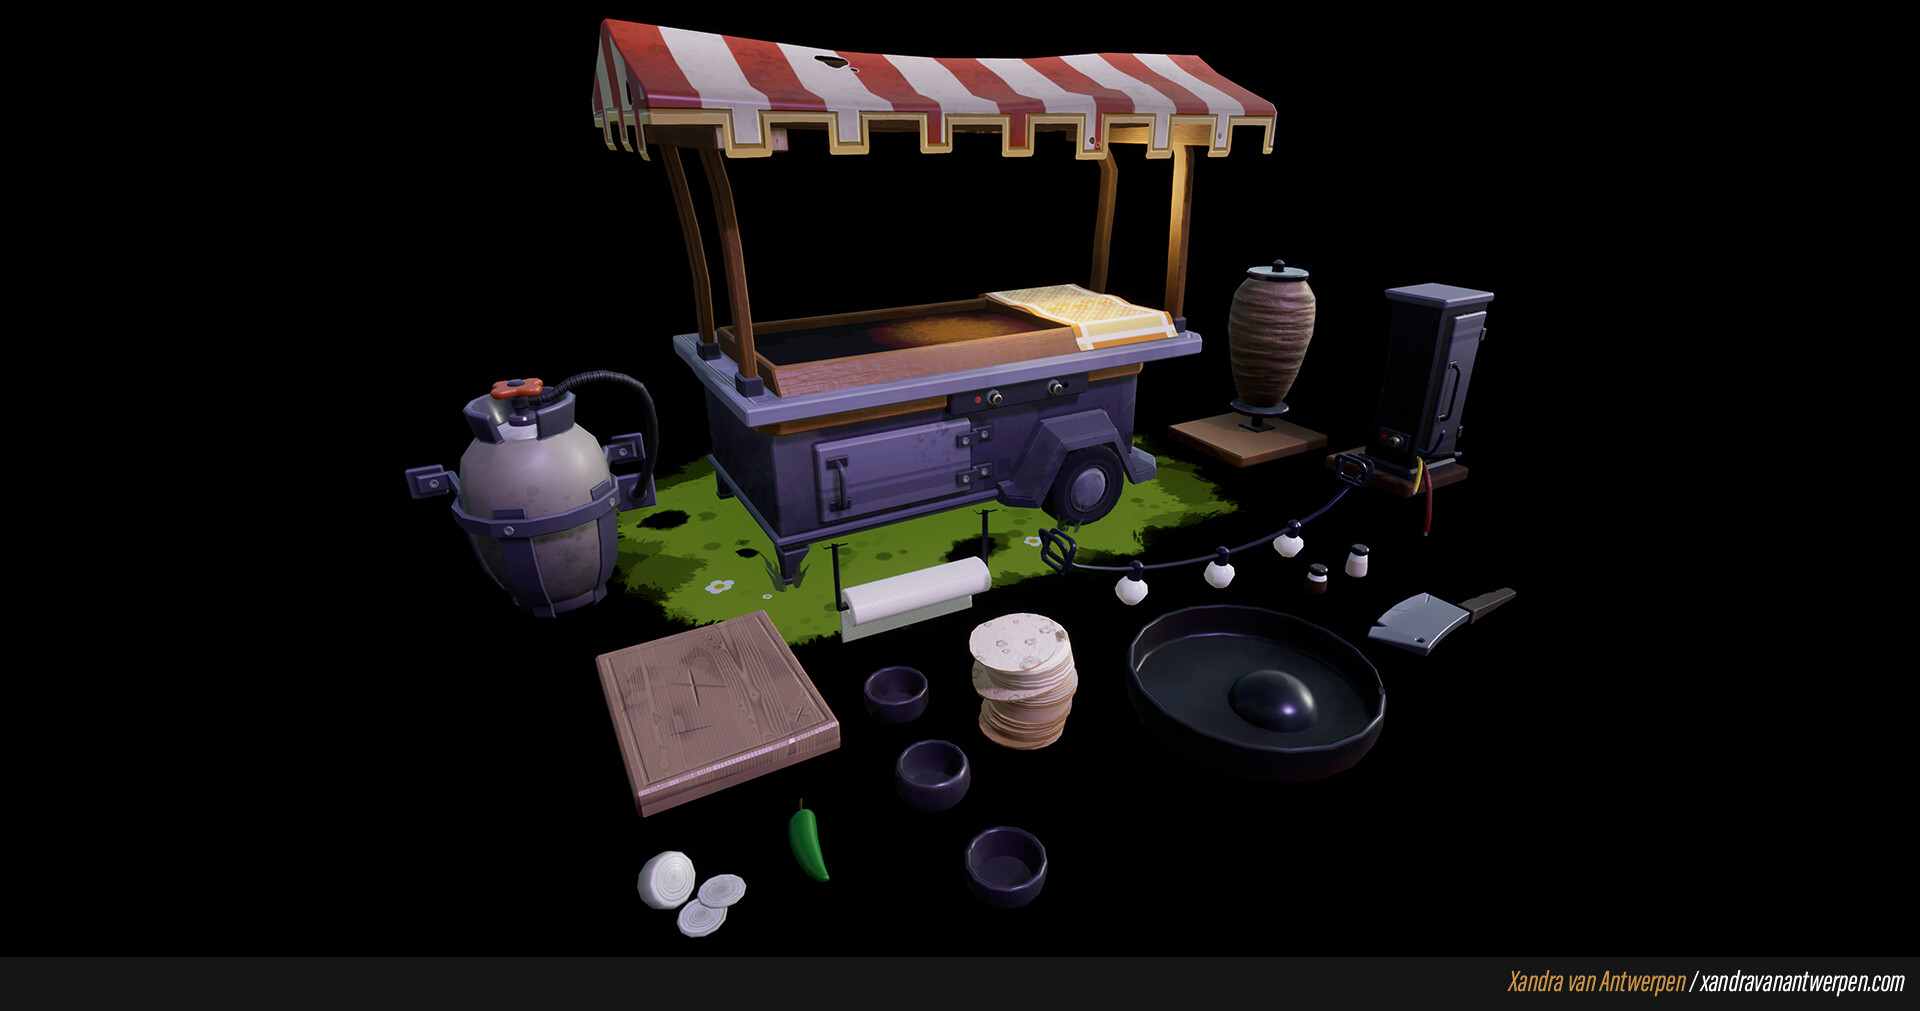 The props that I created and textured for this project.